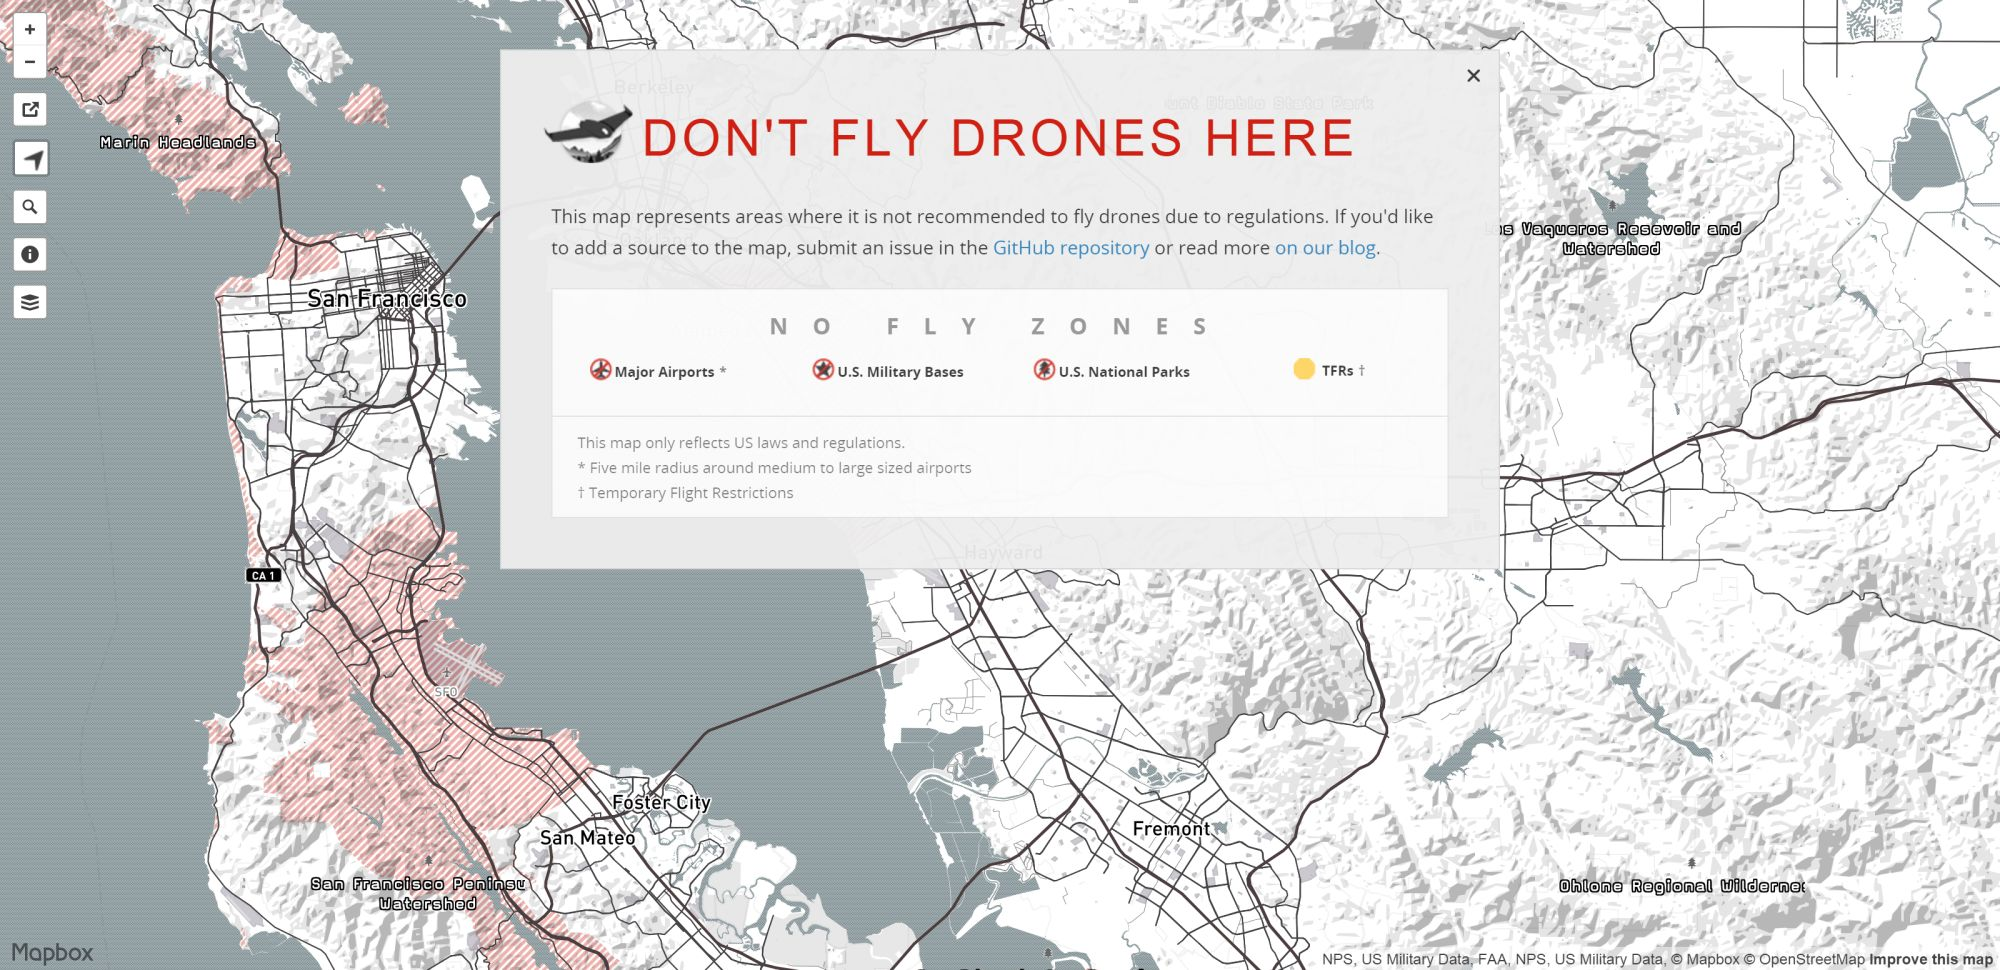 No Fly Zone Map for Drones in the US